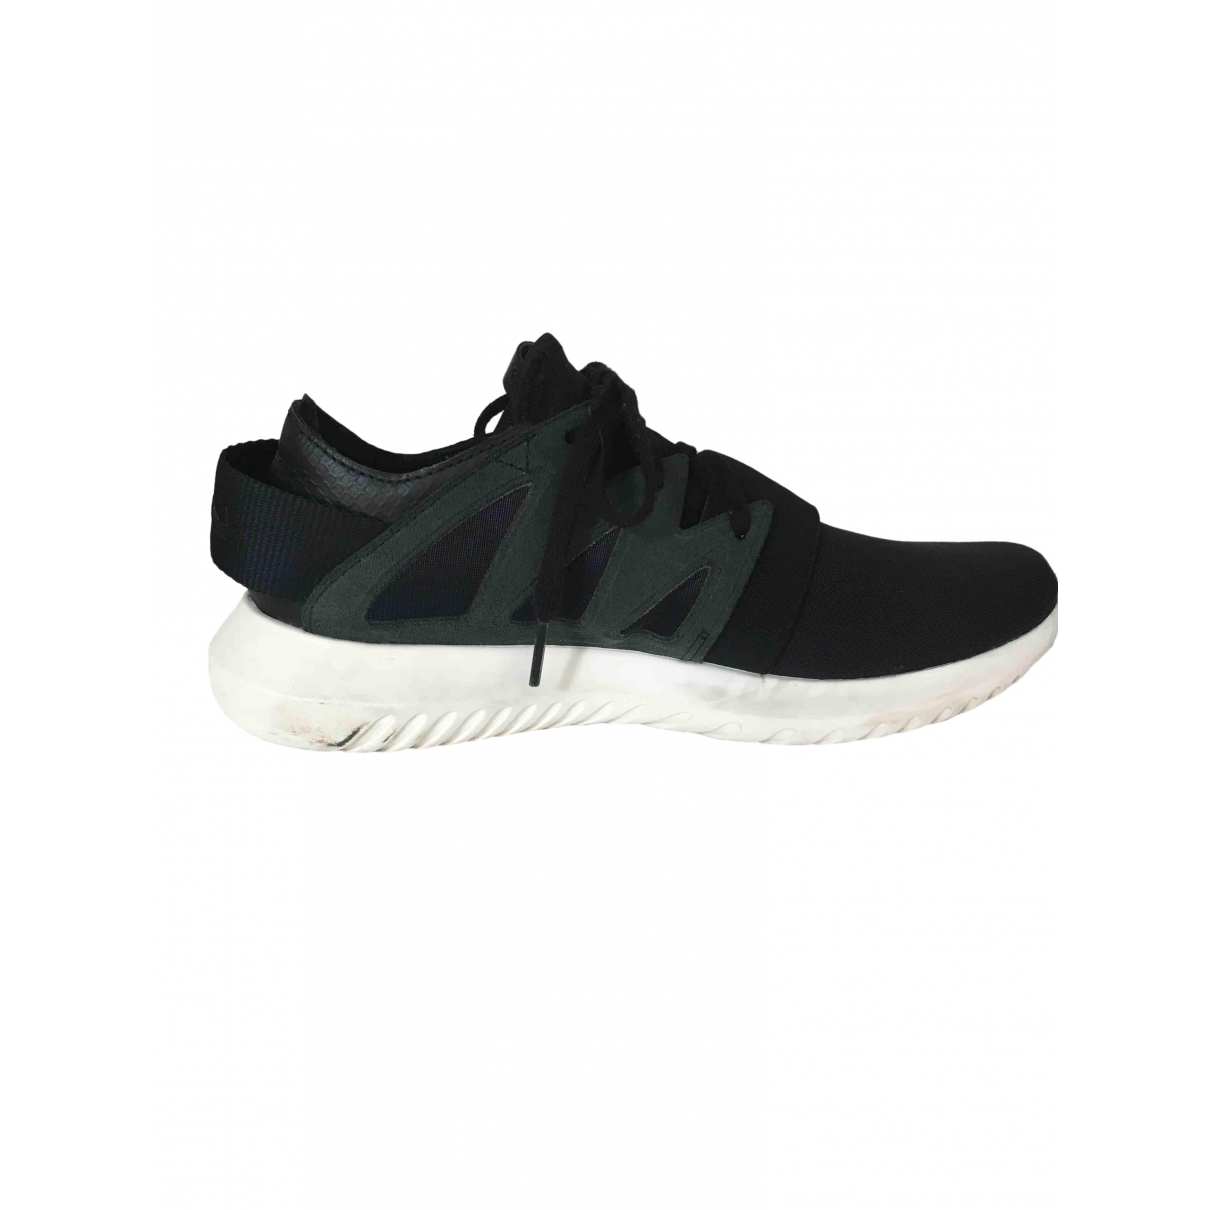 Adidas Tubular Black Trainers for Women 38 IT